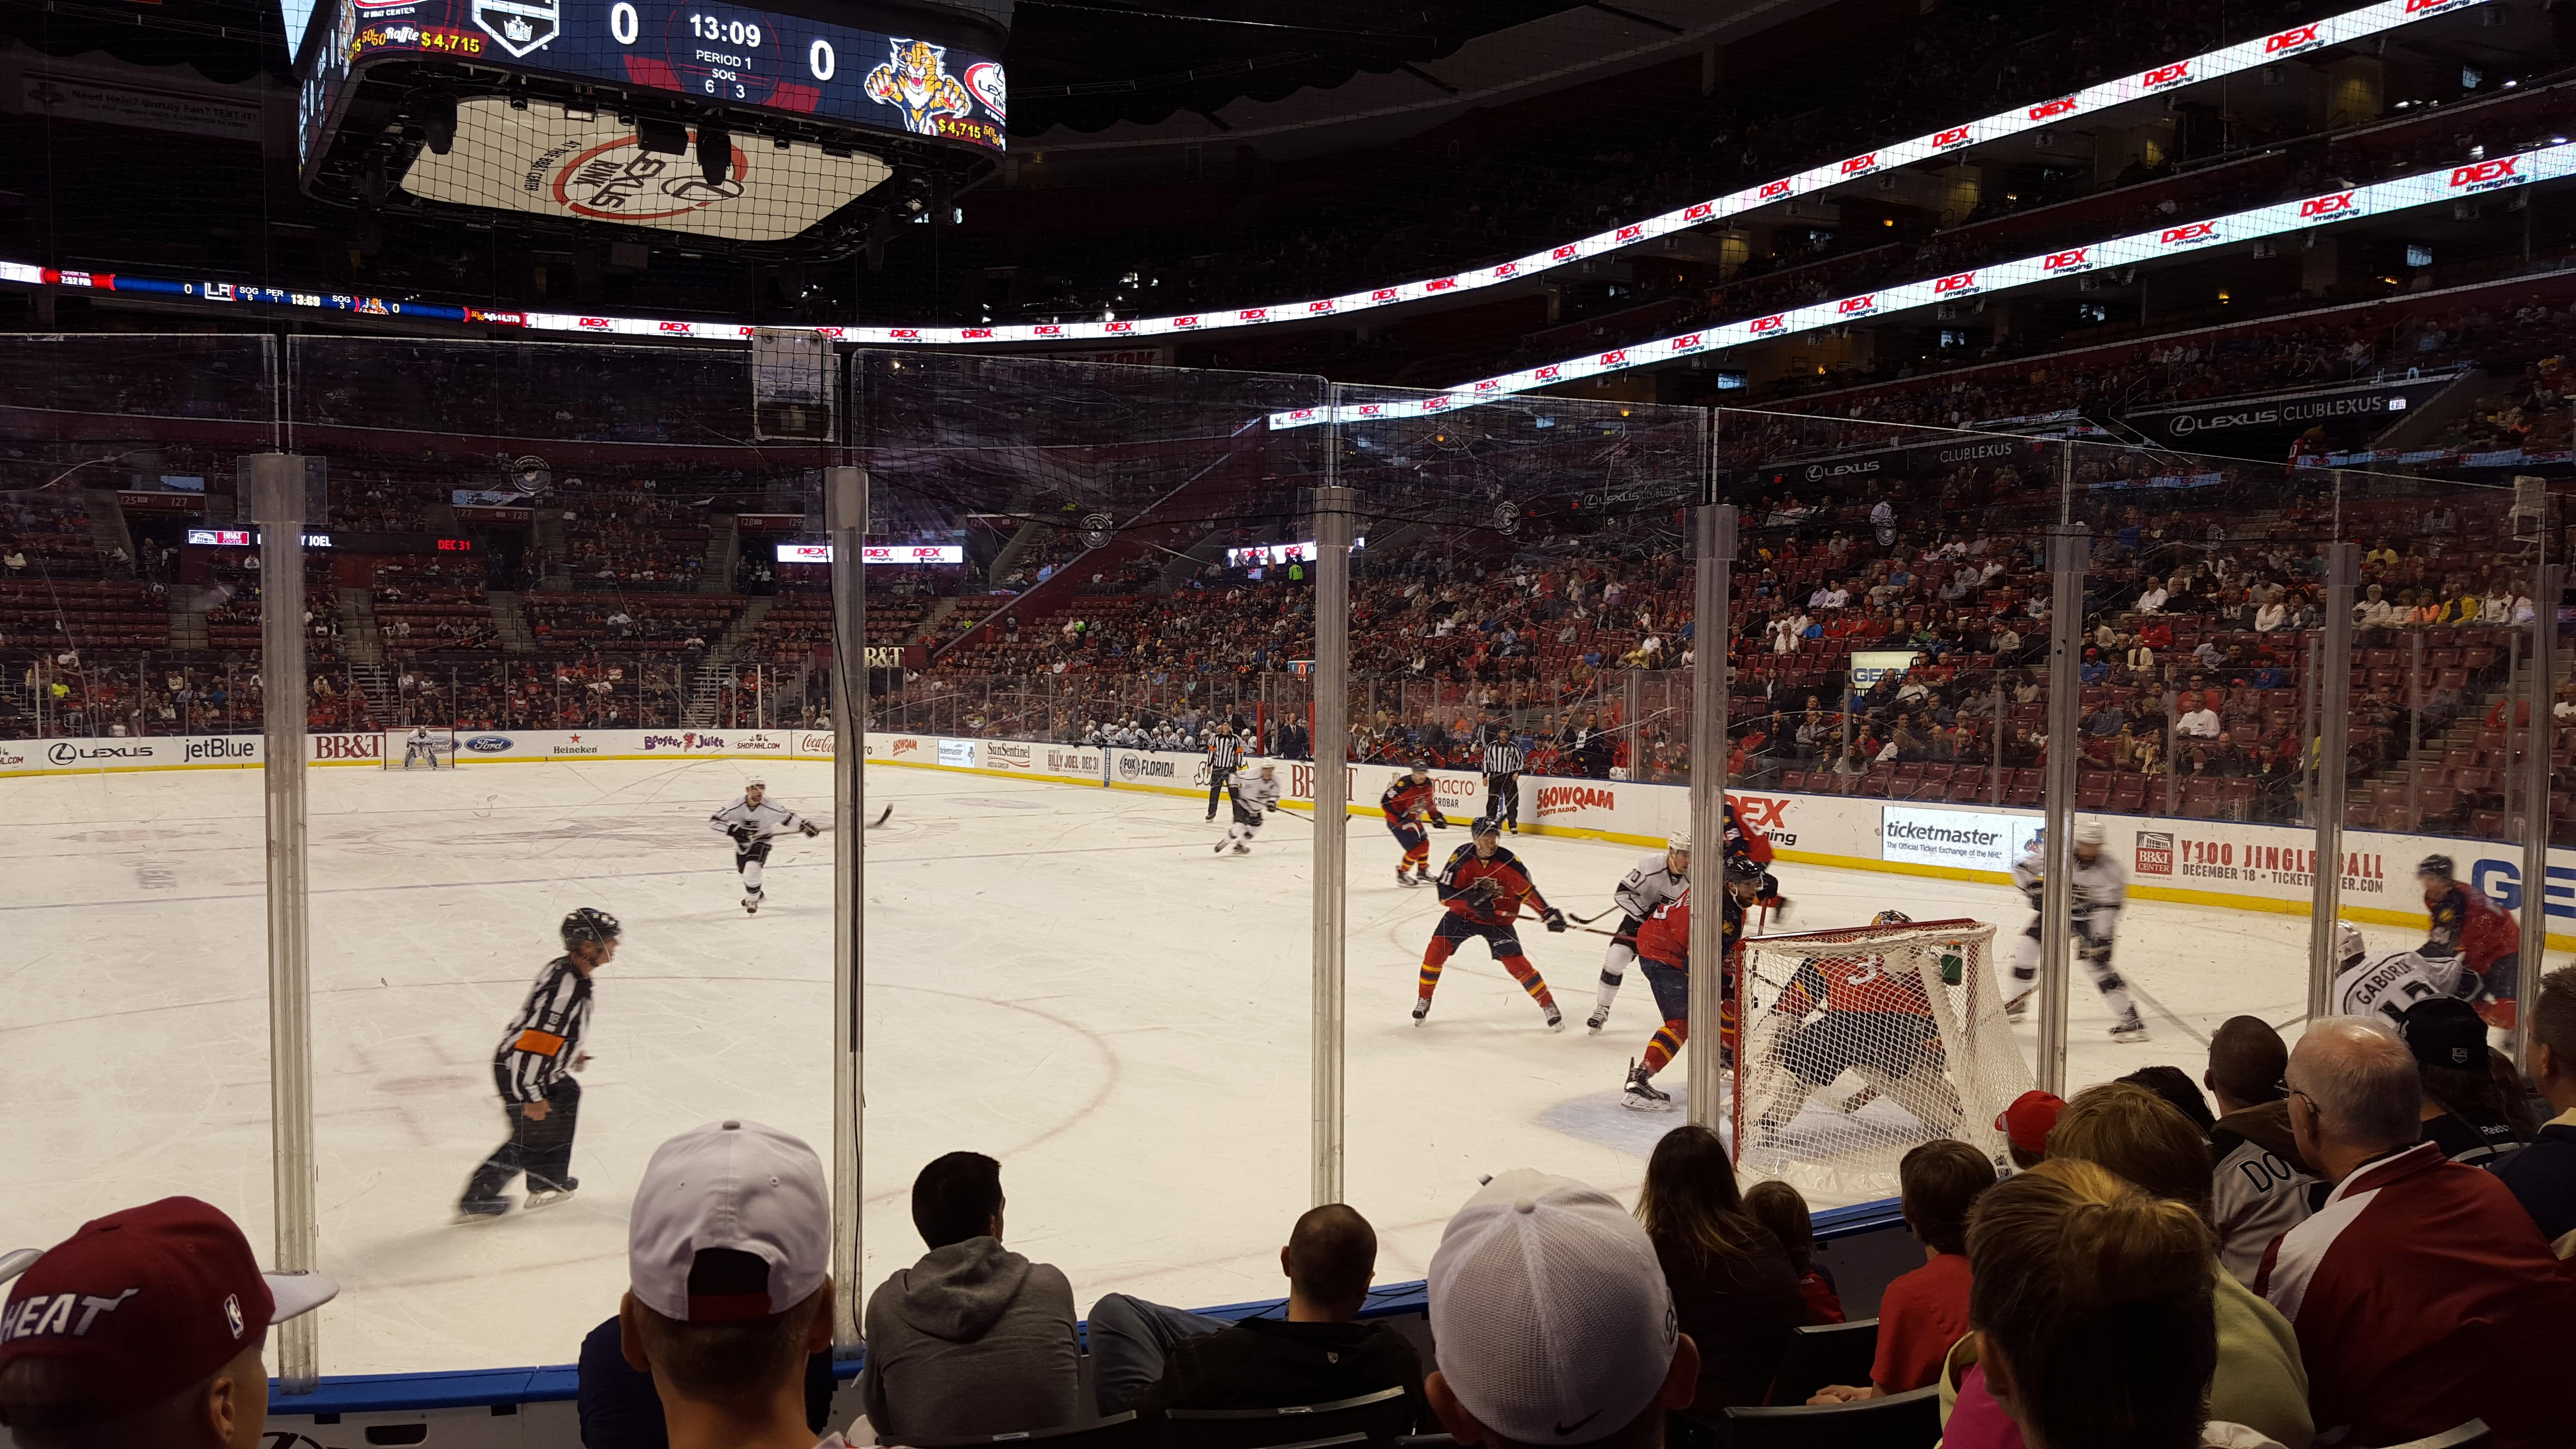 BB&T Center Section 111 Row 6 Seat 12